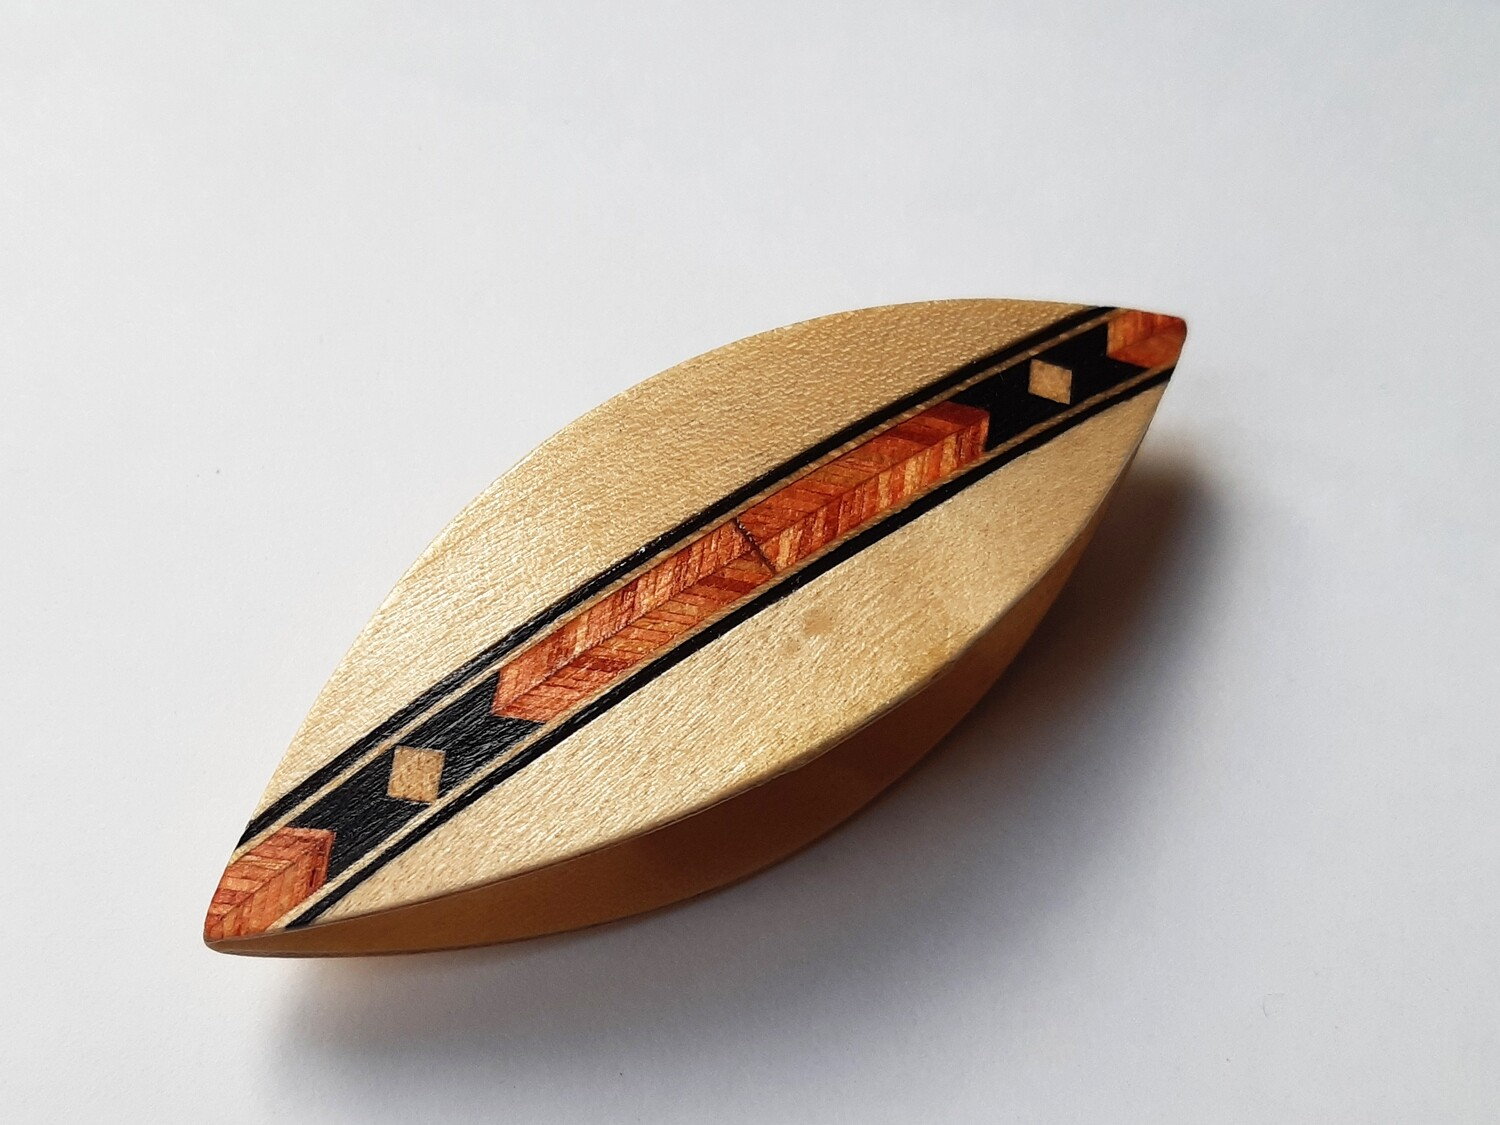 Tatting Shuttle Decorated With Marquetry